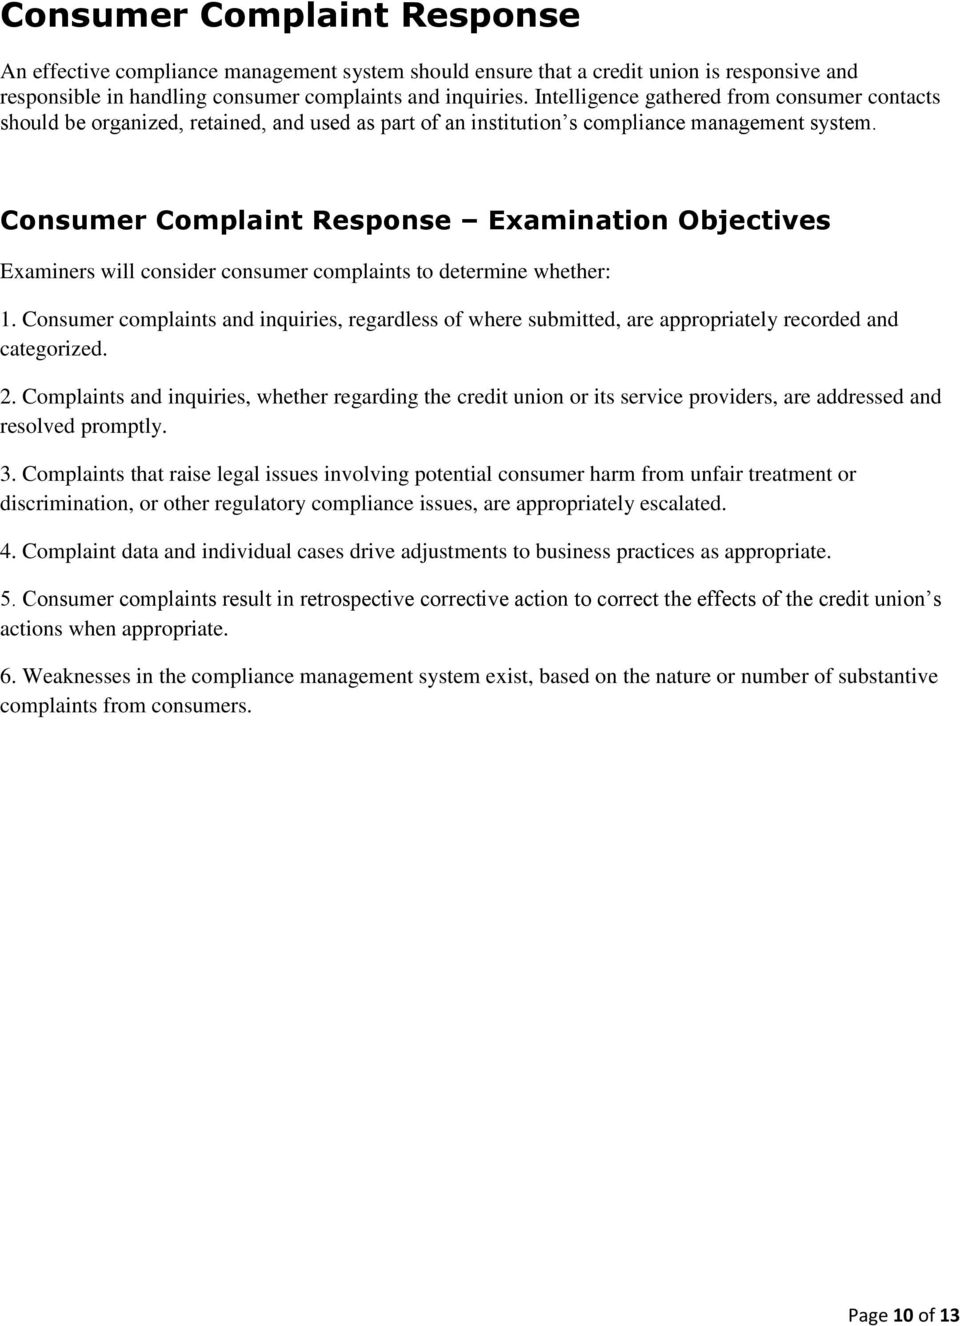 Consumer Complaint Response Examination Objectives Examiners will consider consumer complaints to determine whether: 1.